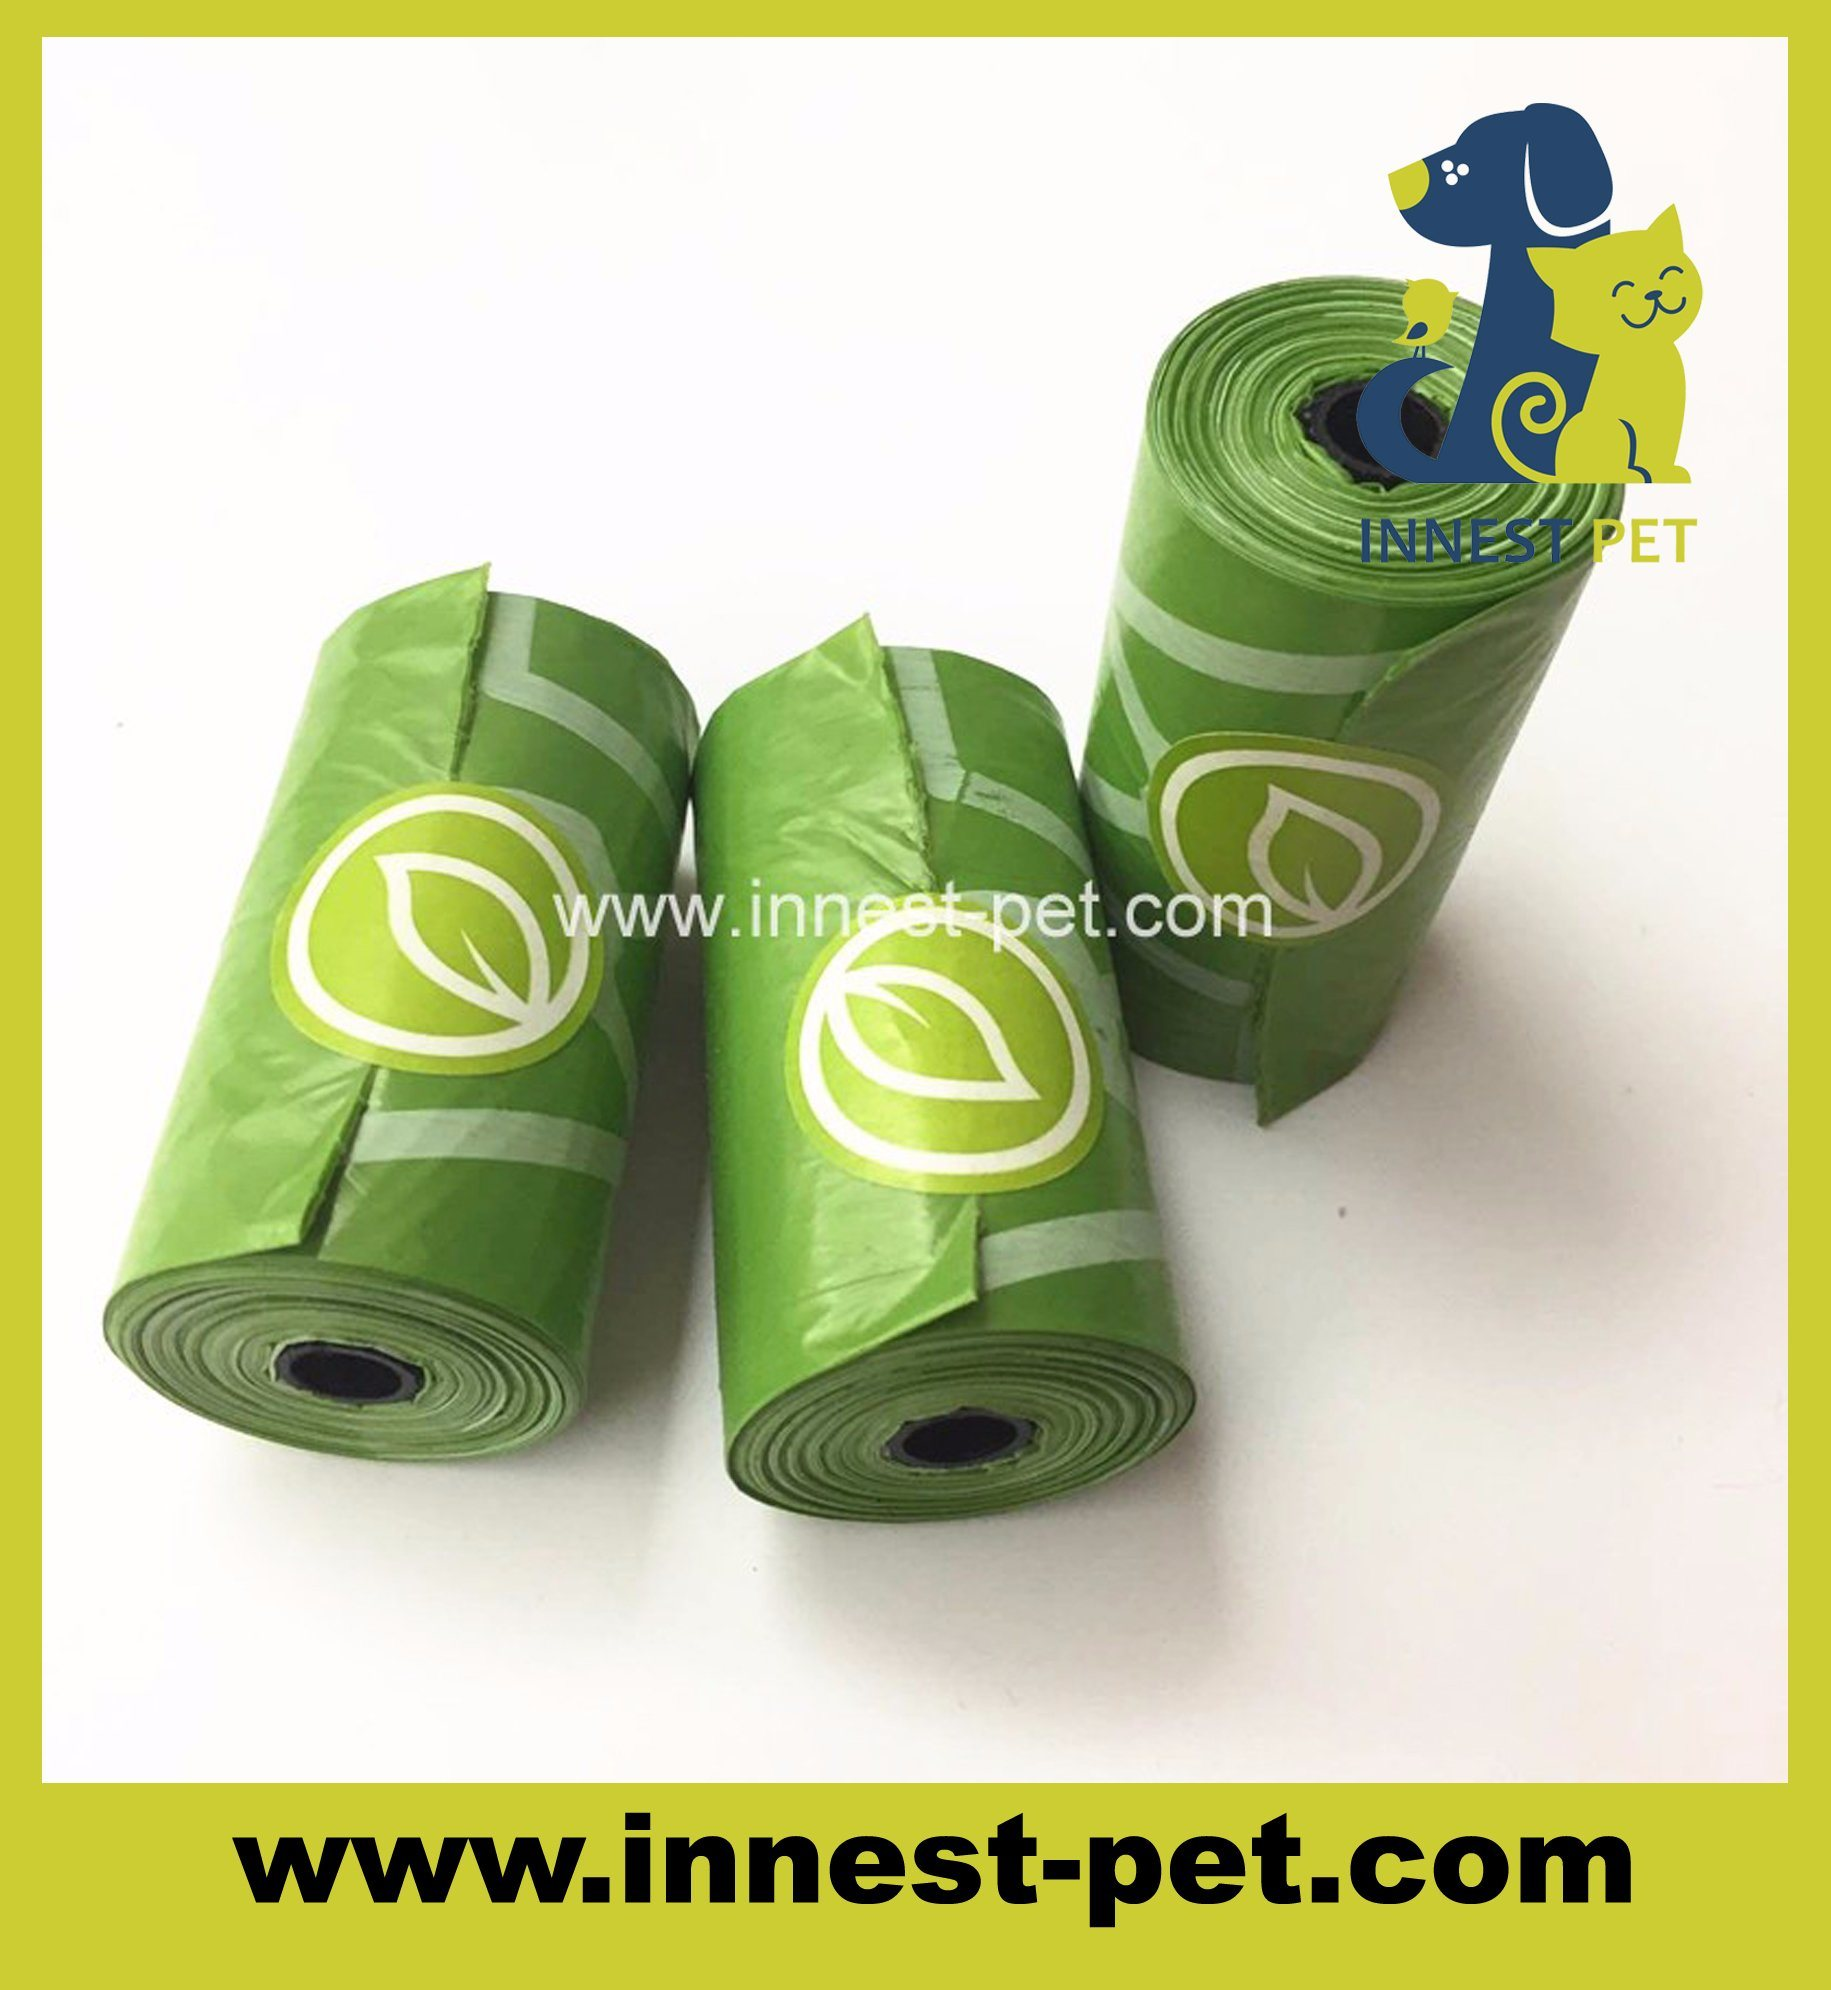 China Factory Direct Green Biodegradable Dog Bag In Bulk Waste